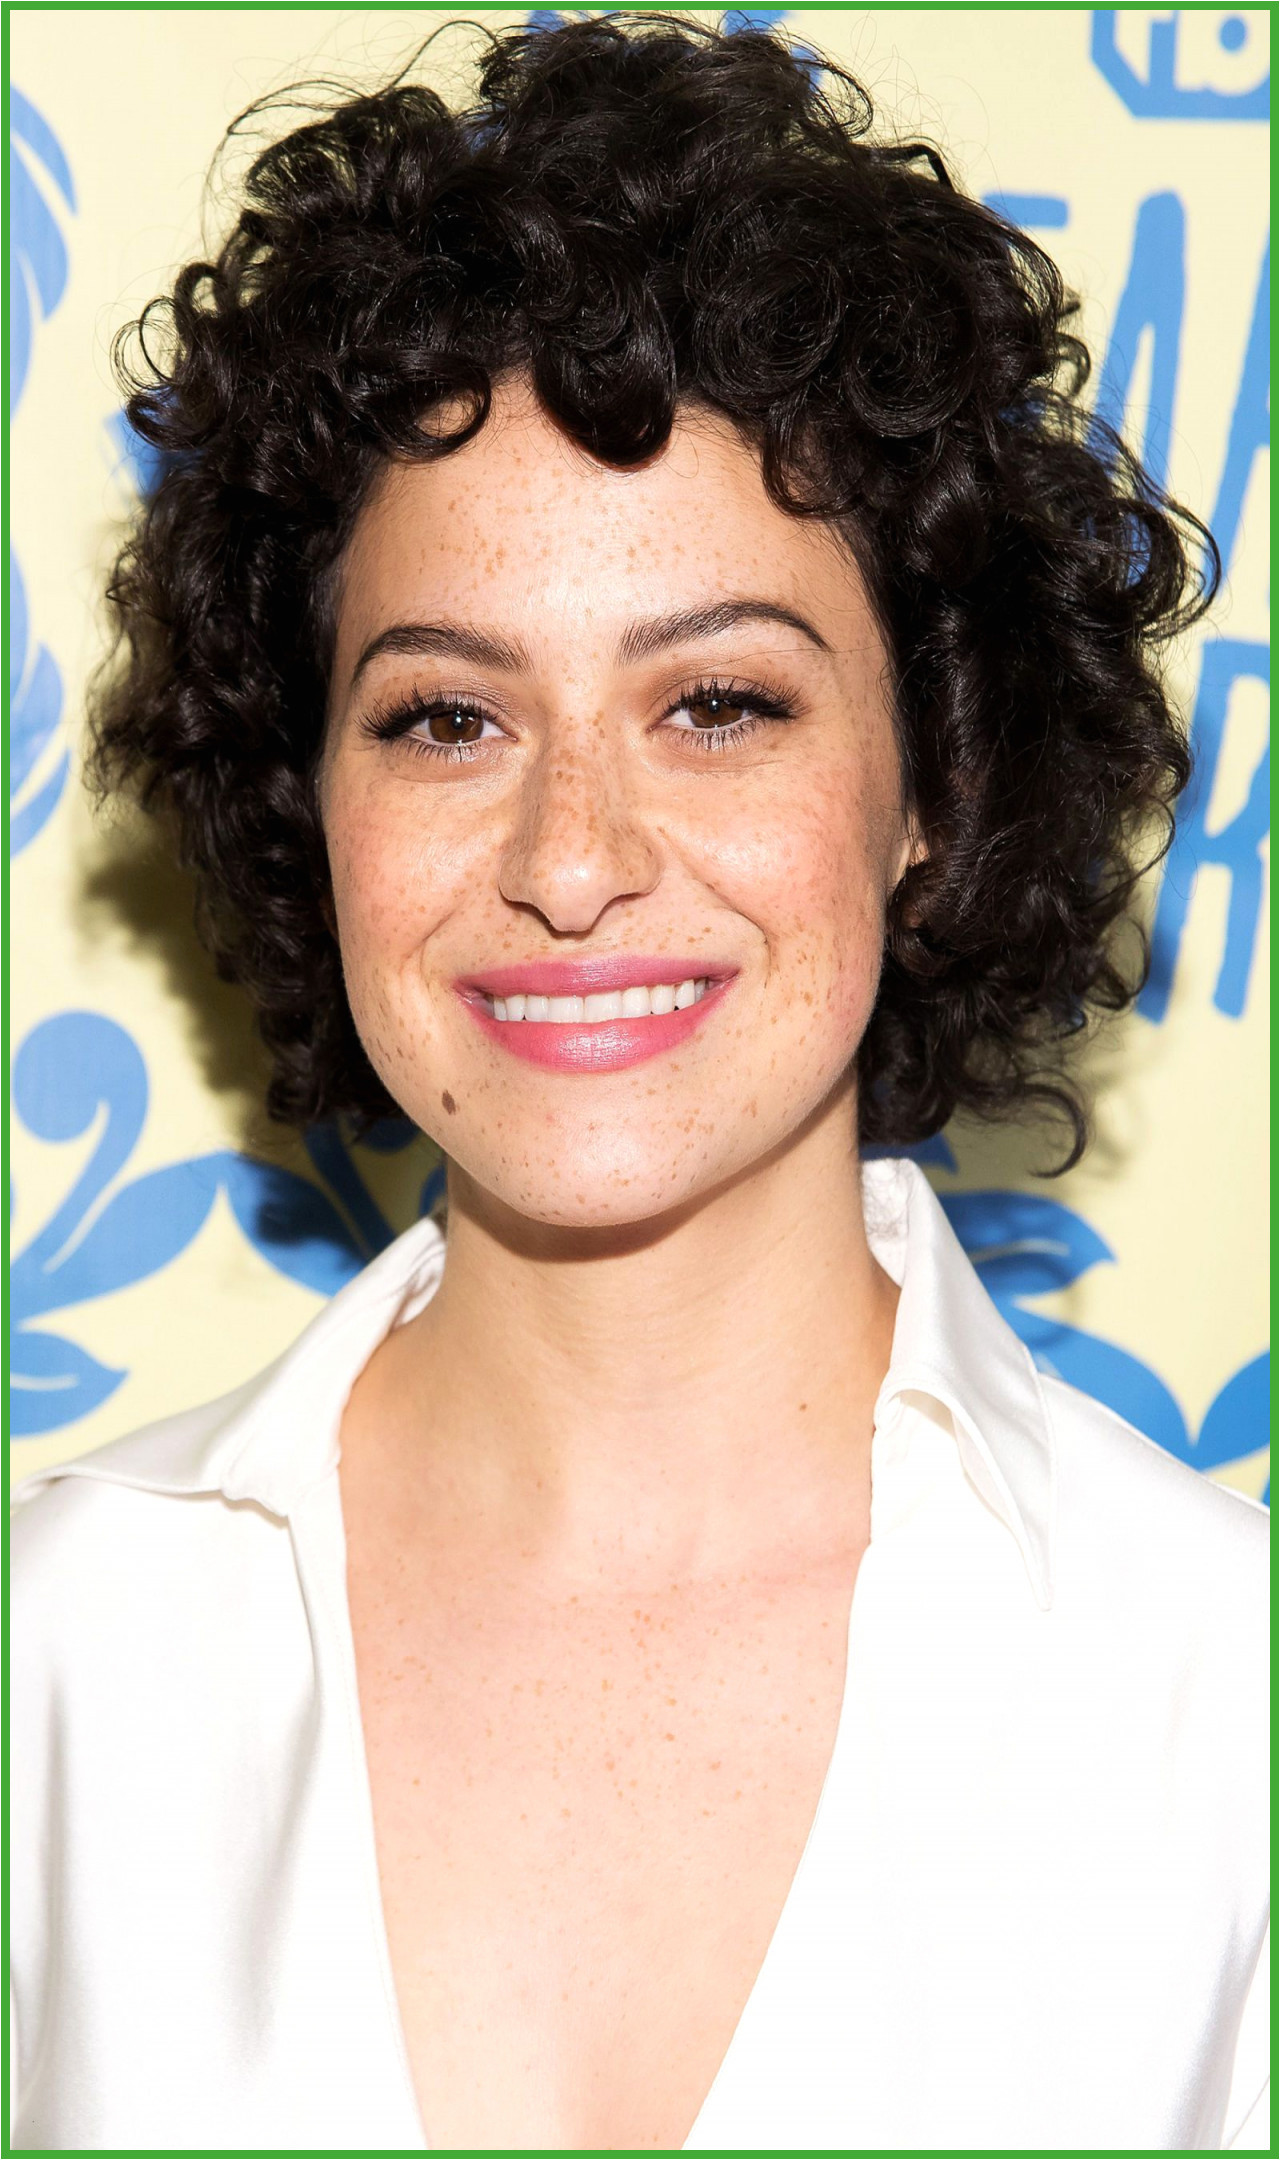 Names Hairstyles New Very Curly Hairstyles Fresh Curly Hair 0d Layered Haircut Curly Hair